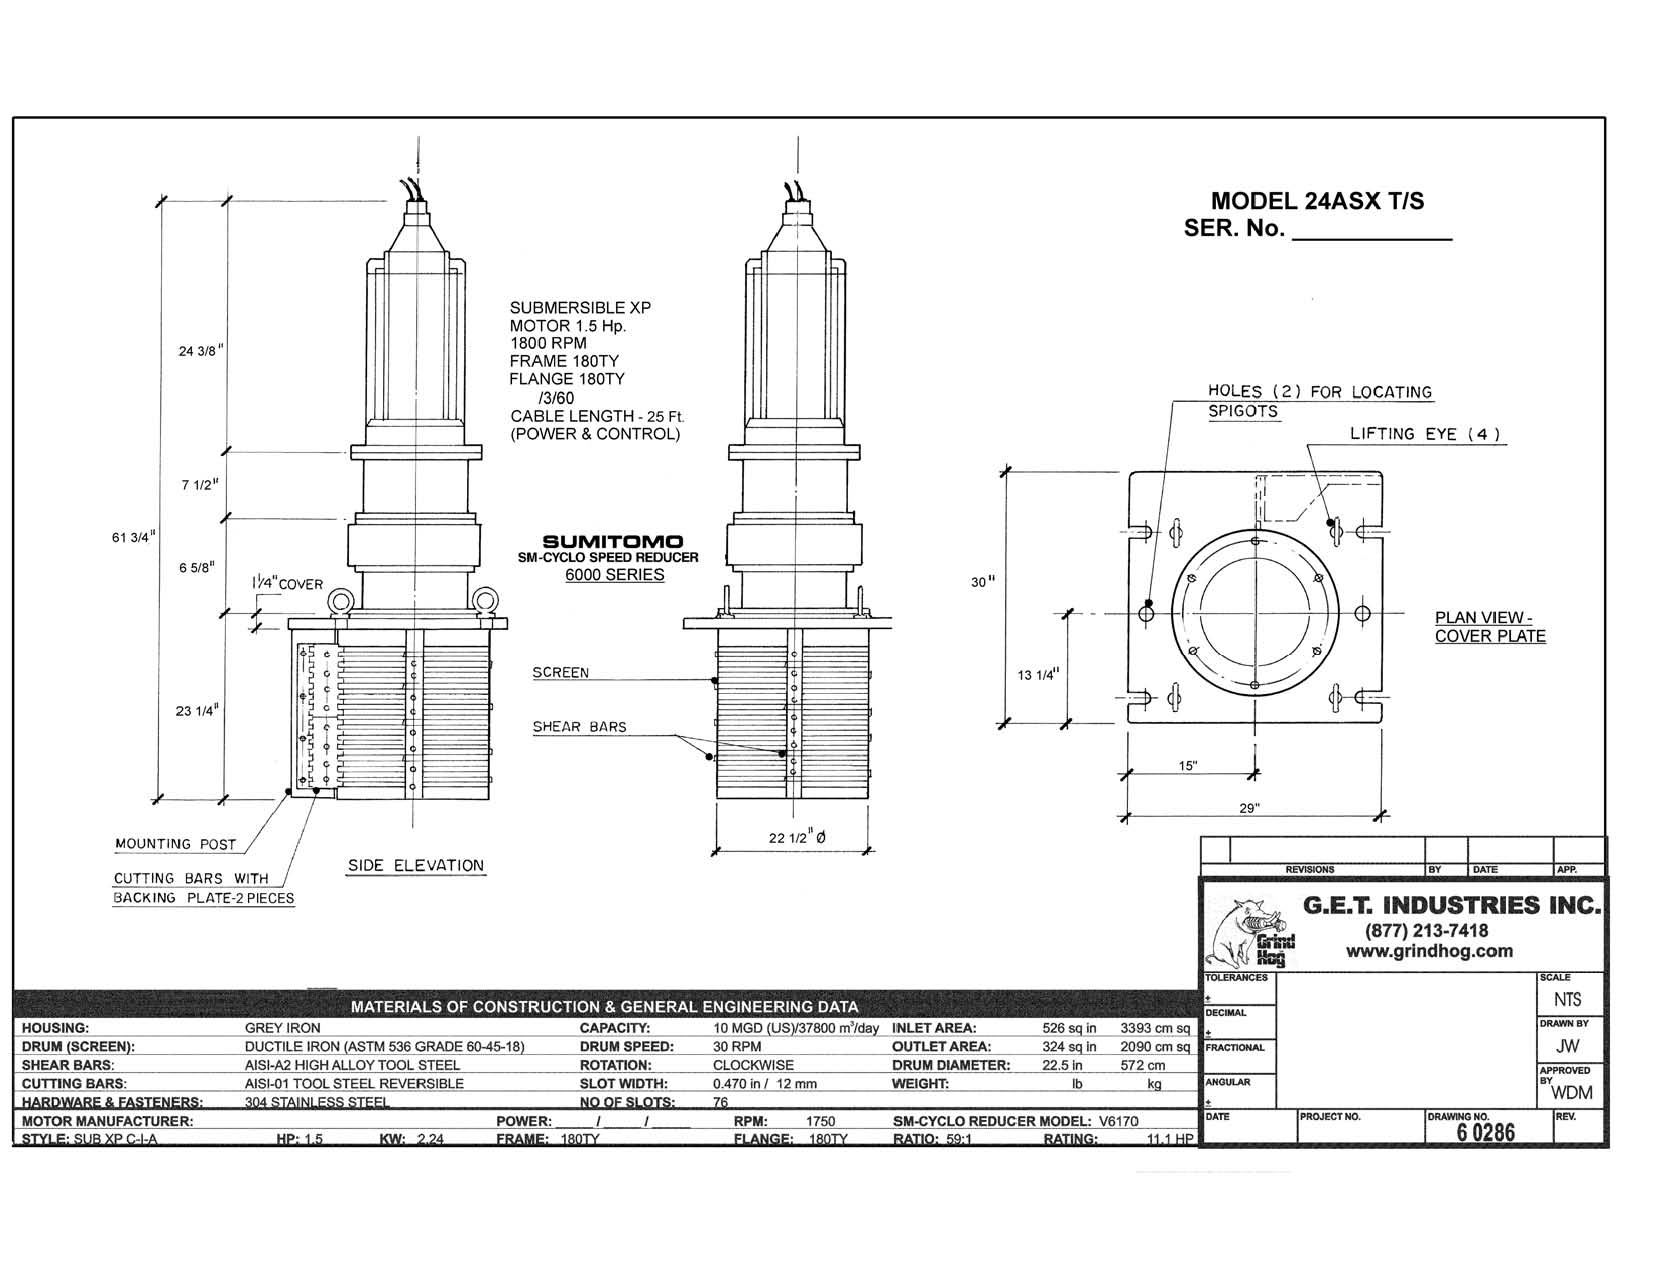 data drawing for Model 24ASX T/S